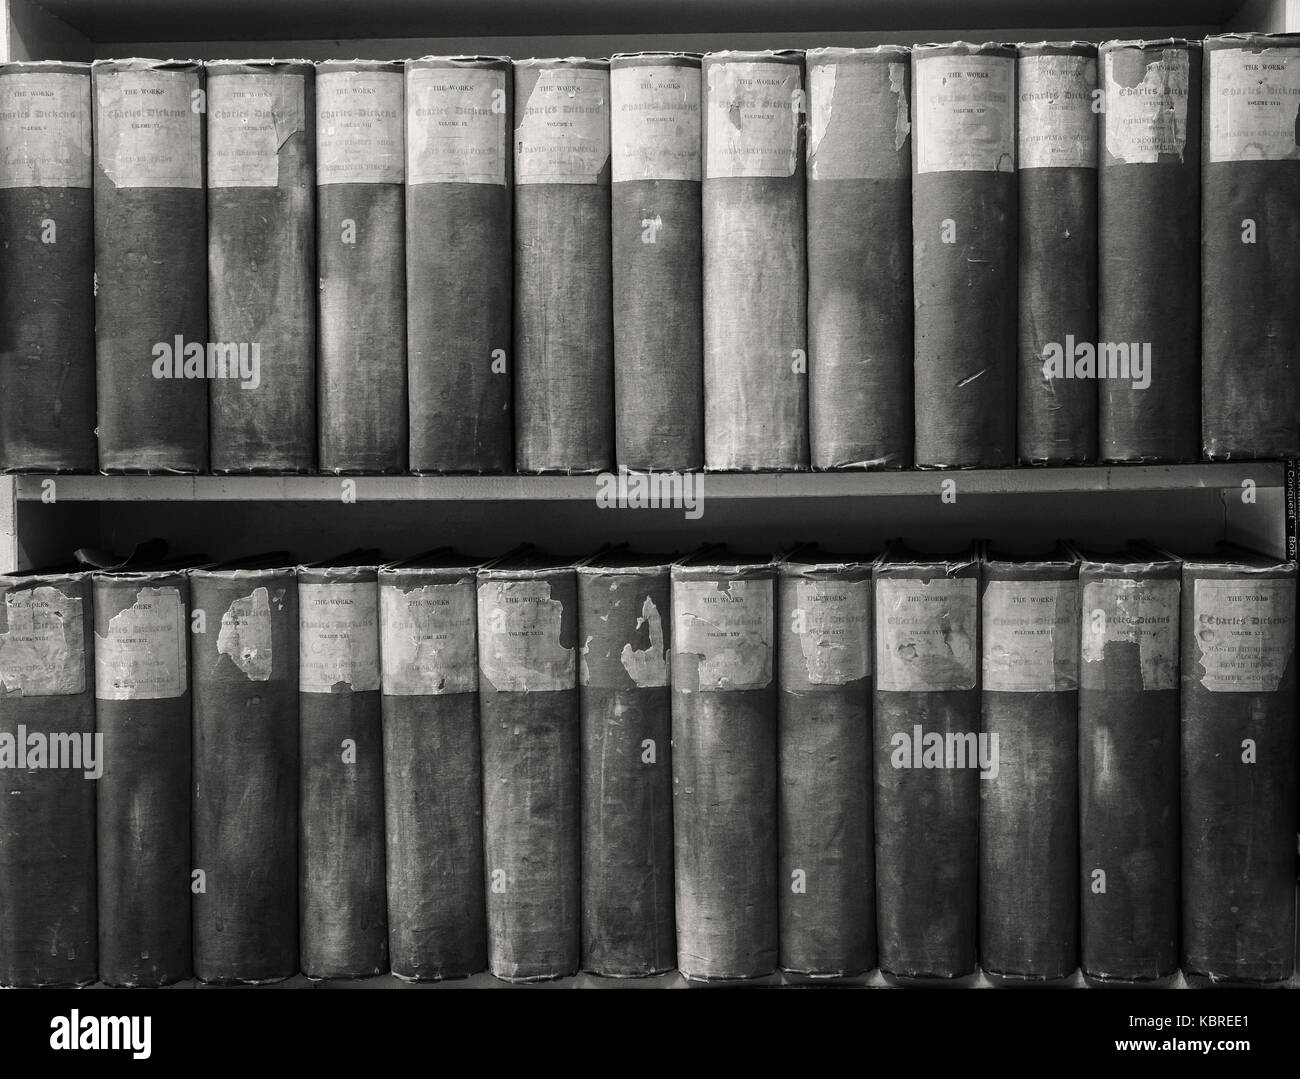 Books in secondhand bookshop converted to black and white - Stock Image